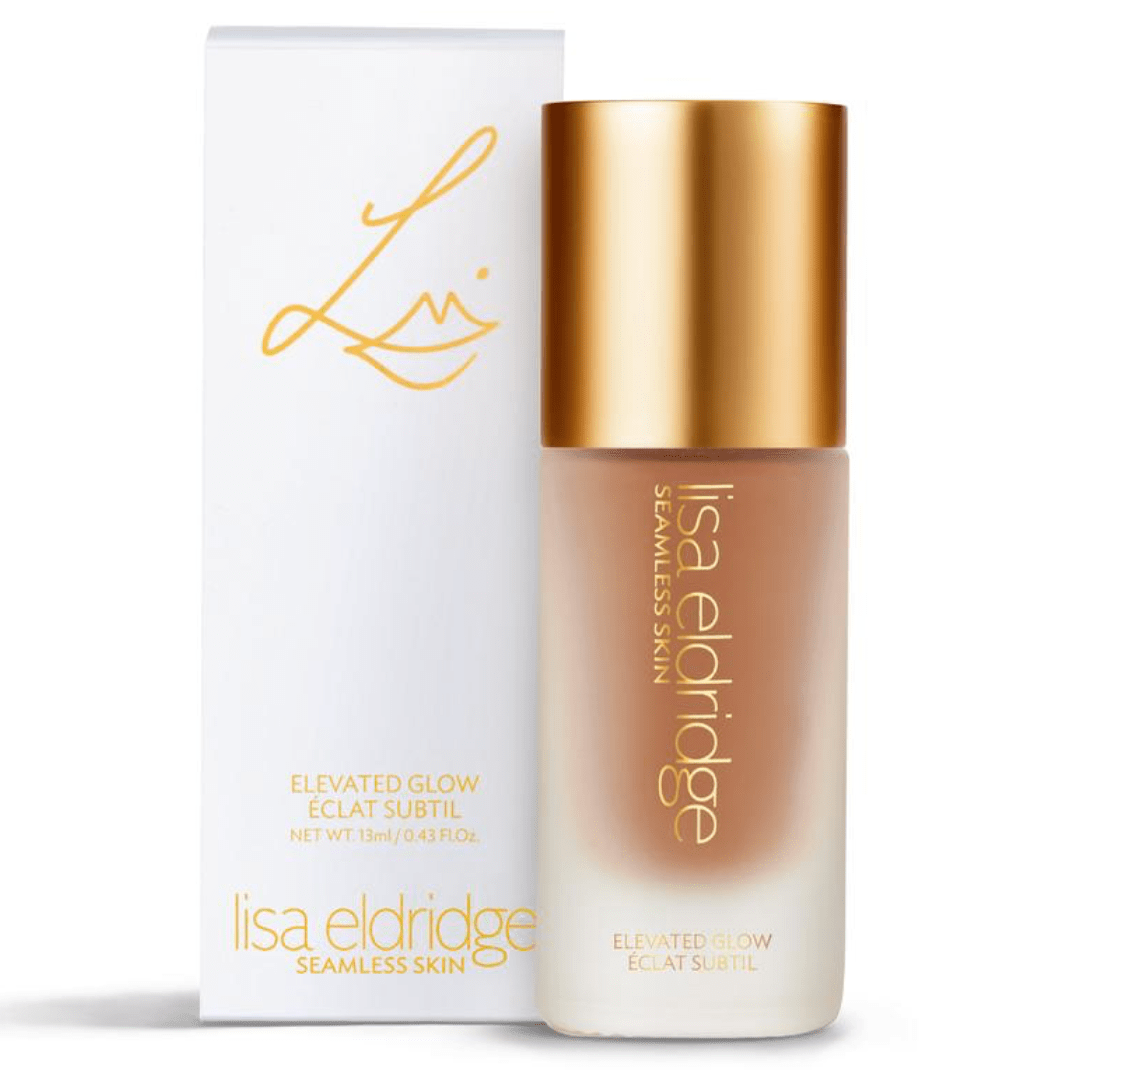 Elevated Glow Highlighter in the shade Celestial Fire